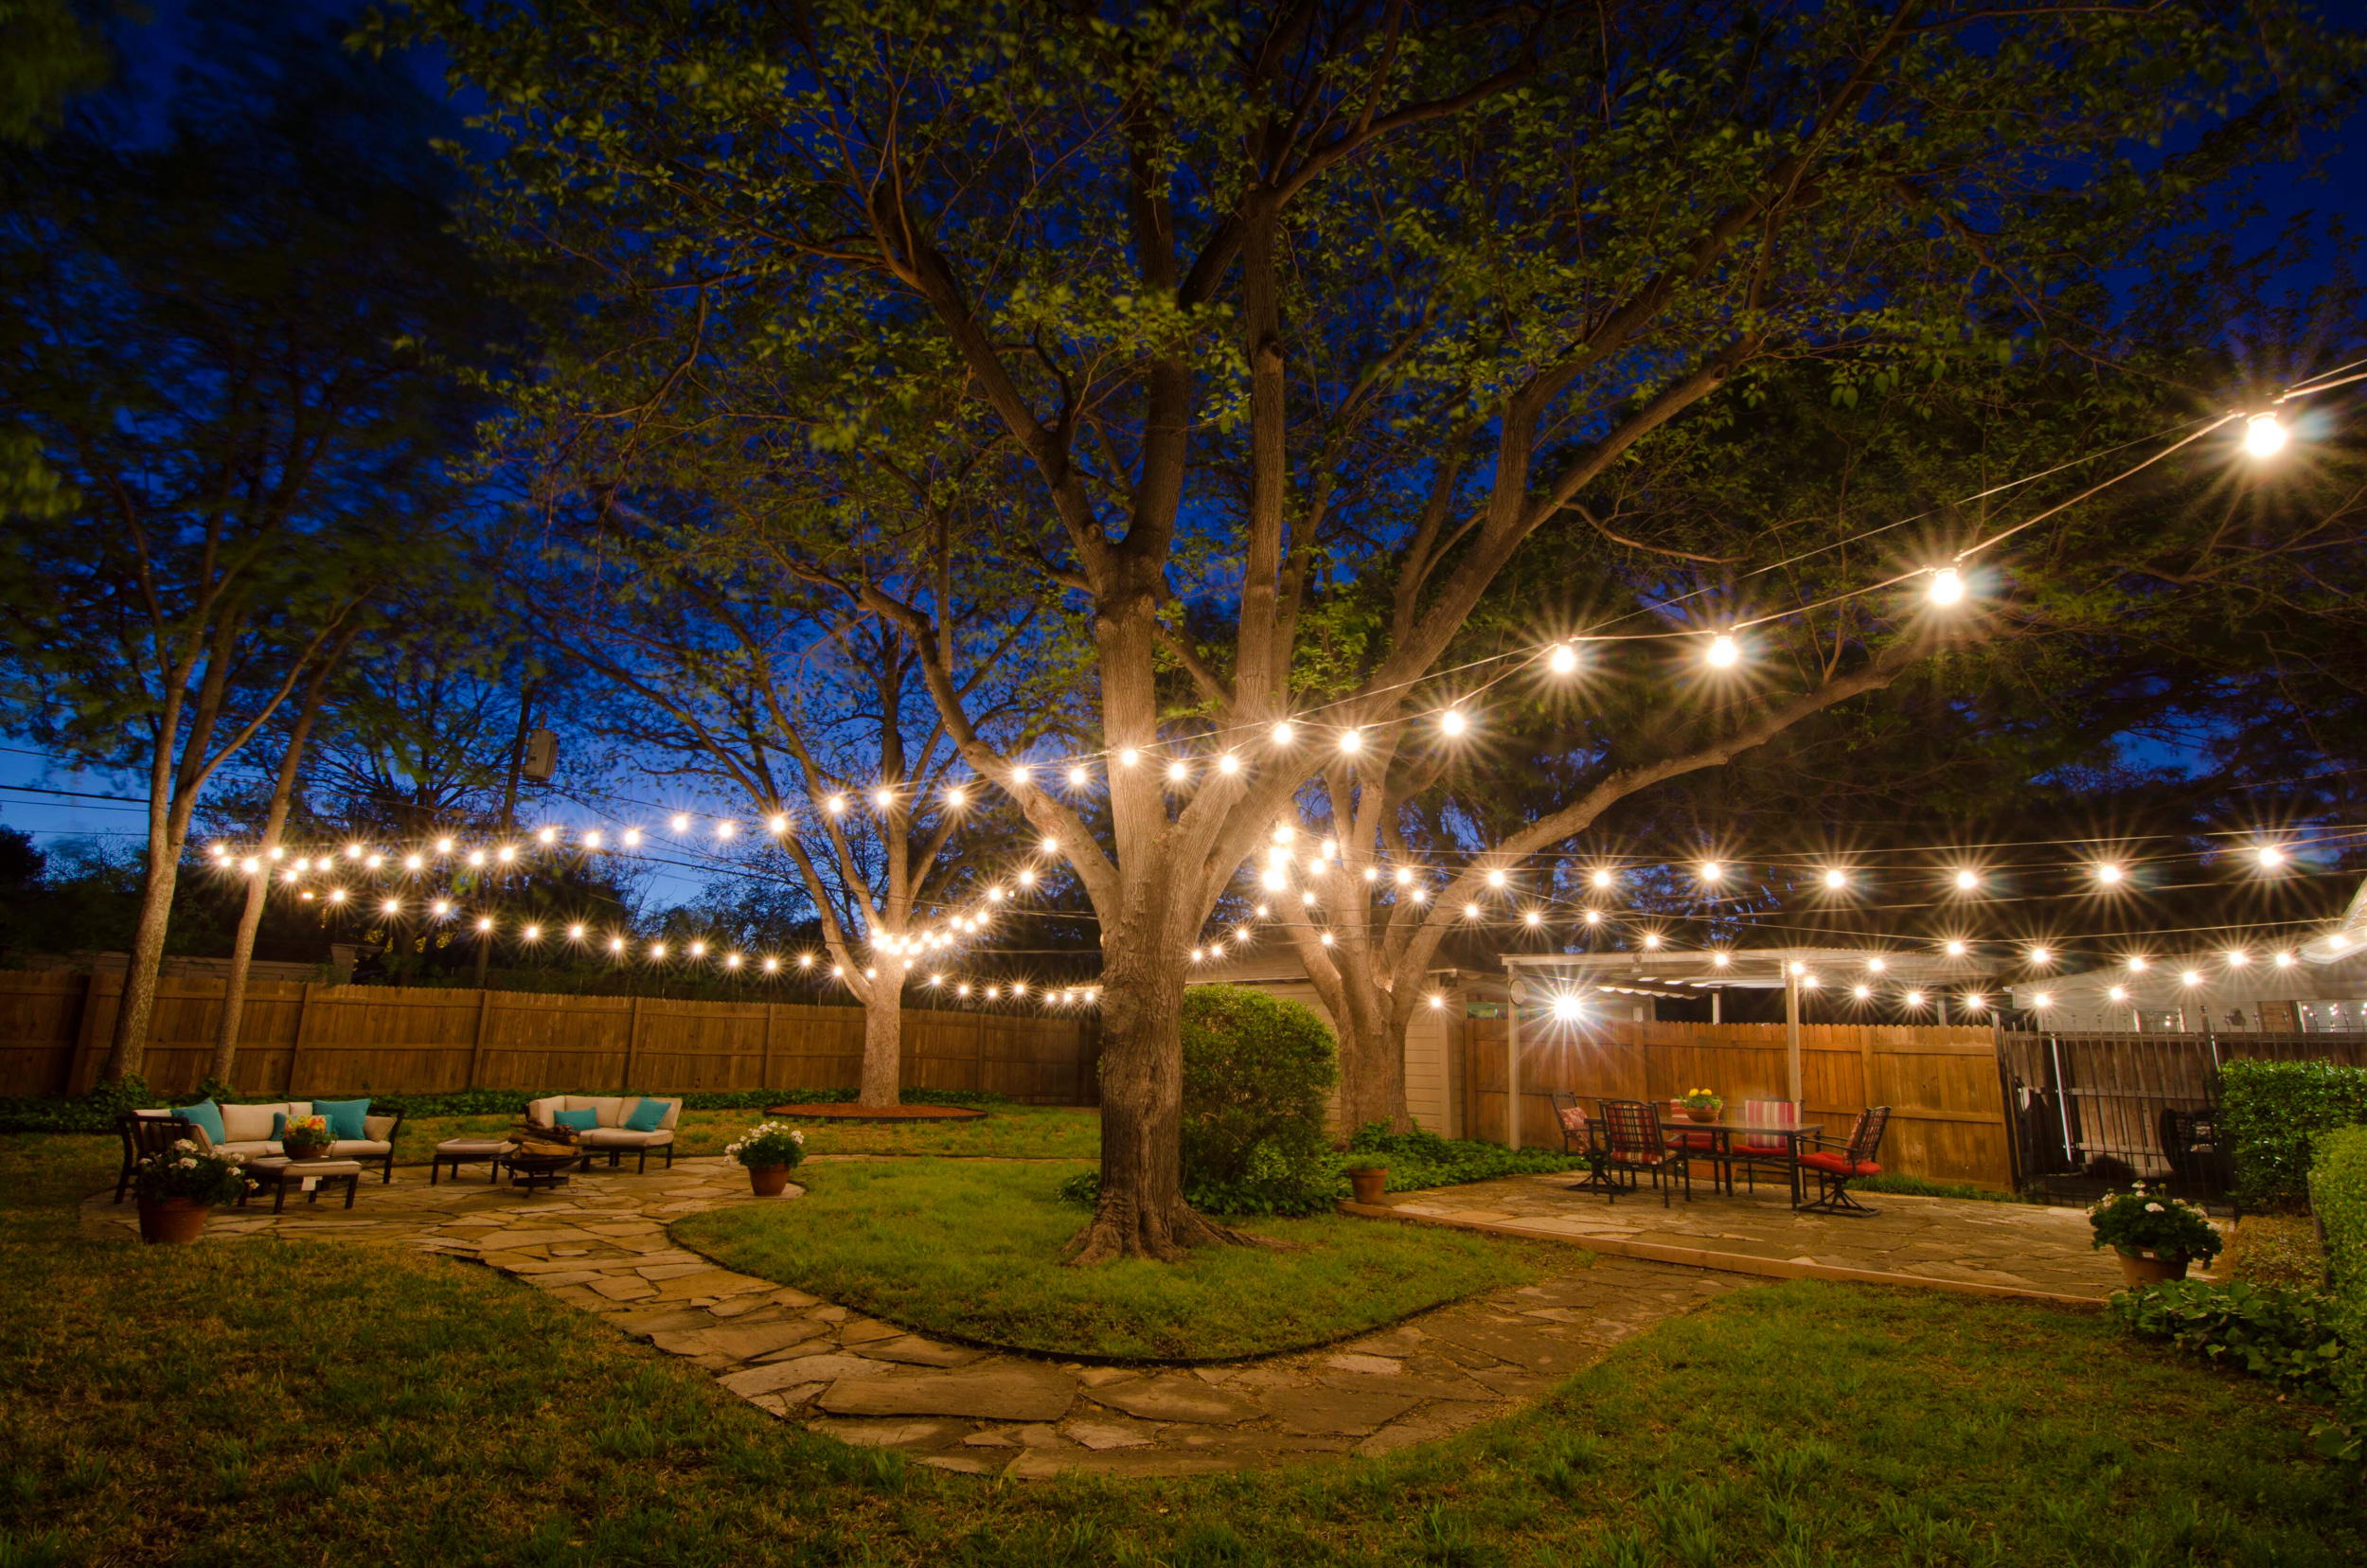 Kelly Electric can can design and install outdoor lighting for your home or business